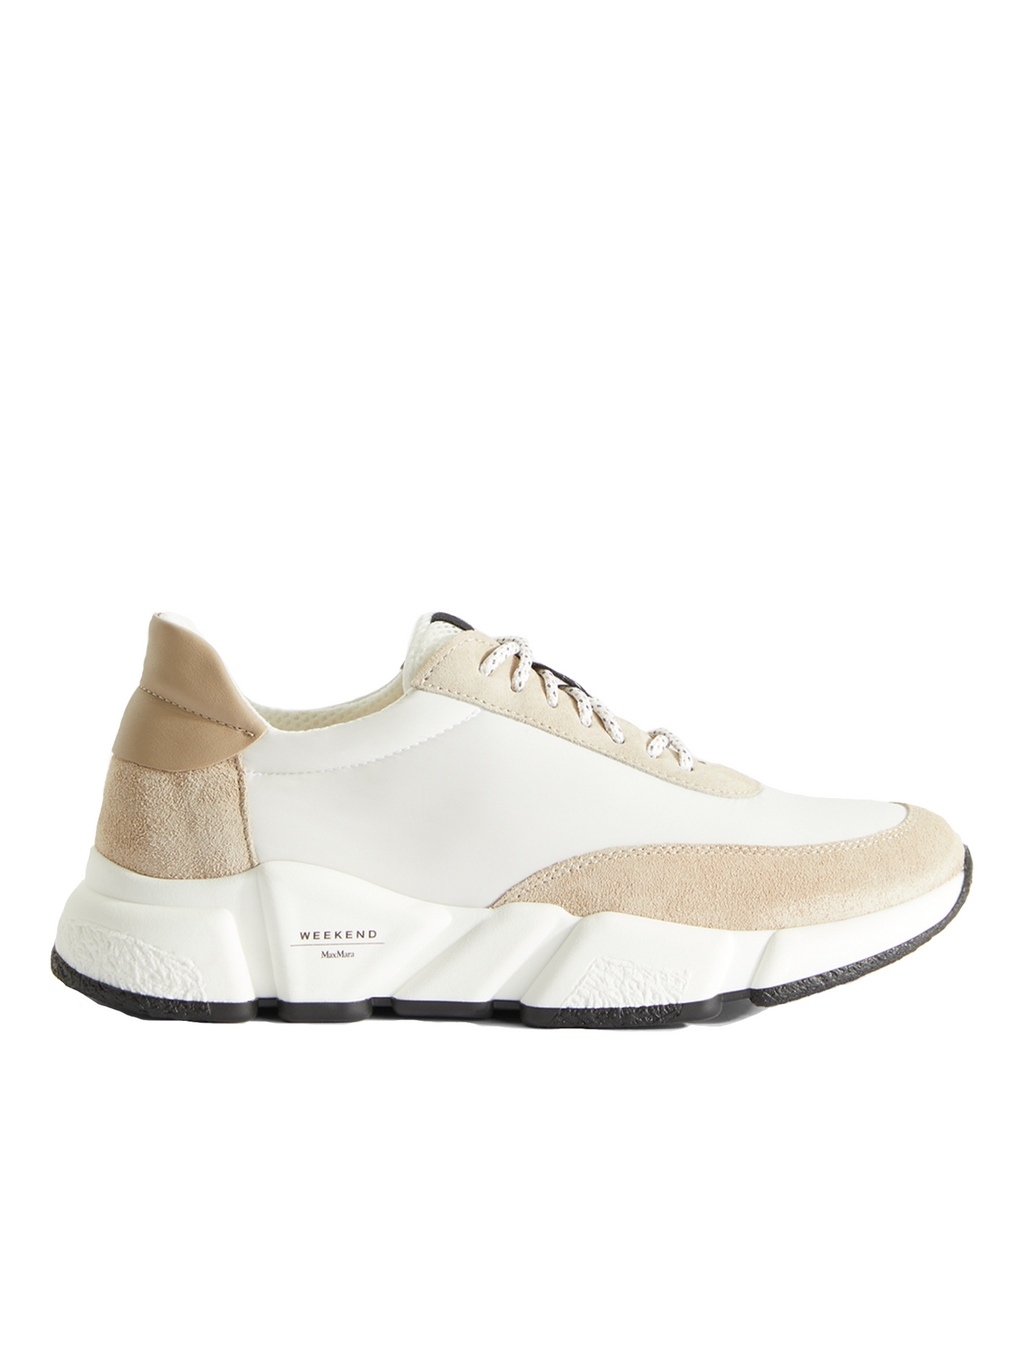 Max Mara Weekend Leather Sneaker